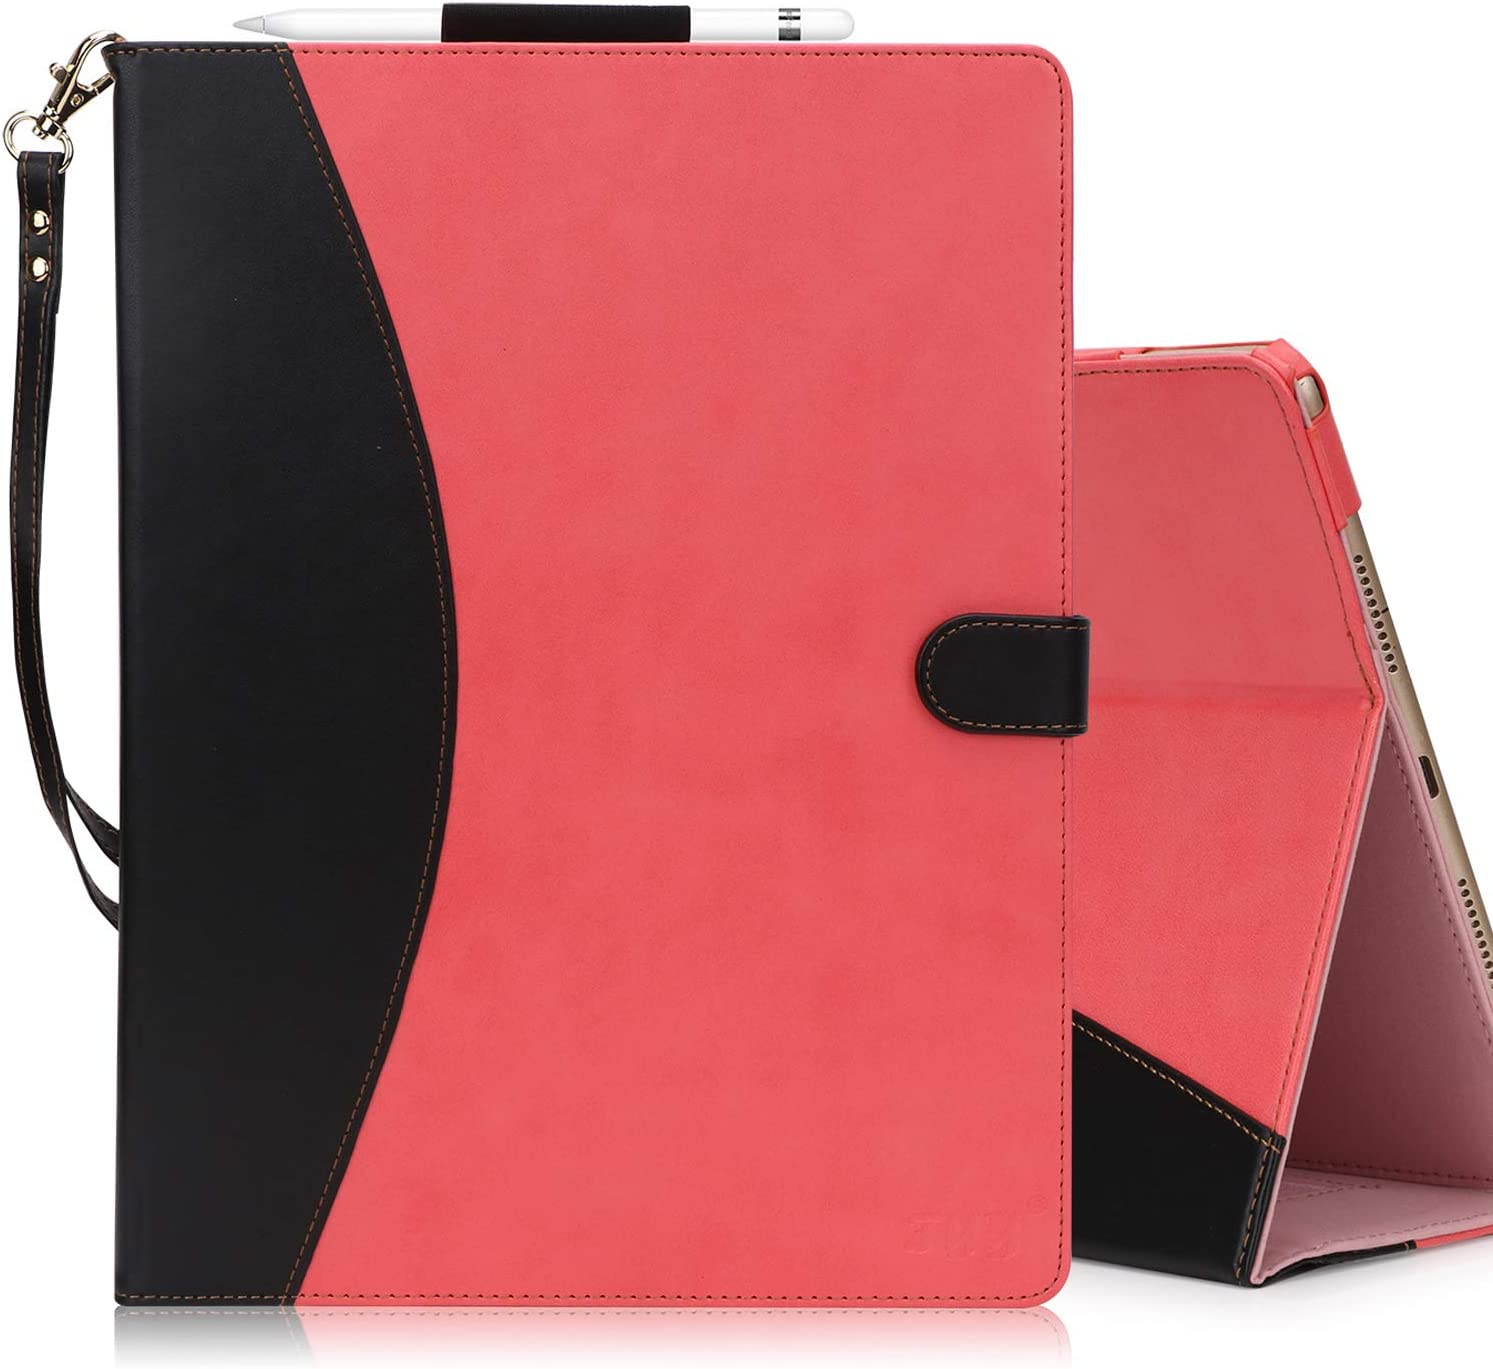 FYY [Leather Case] with [Apple Pencil Holder] for 2019 iPad Air 3 10.5/2017 iPad Pro 10.5 inch Case, Flip Folio Stand Case Protective with [Auto Sleep Wake],Multiple Stand Angles, Card Slots Magenta